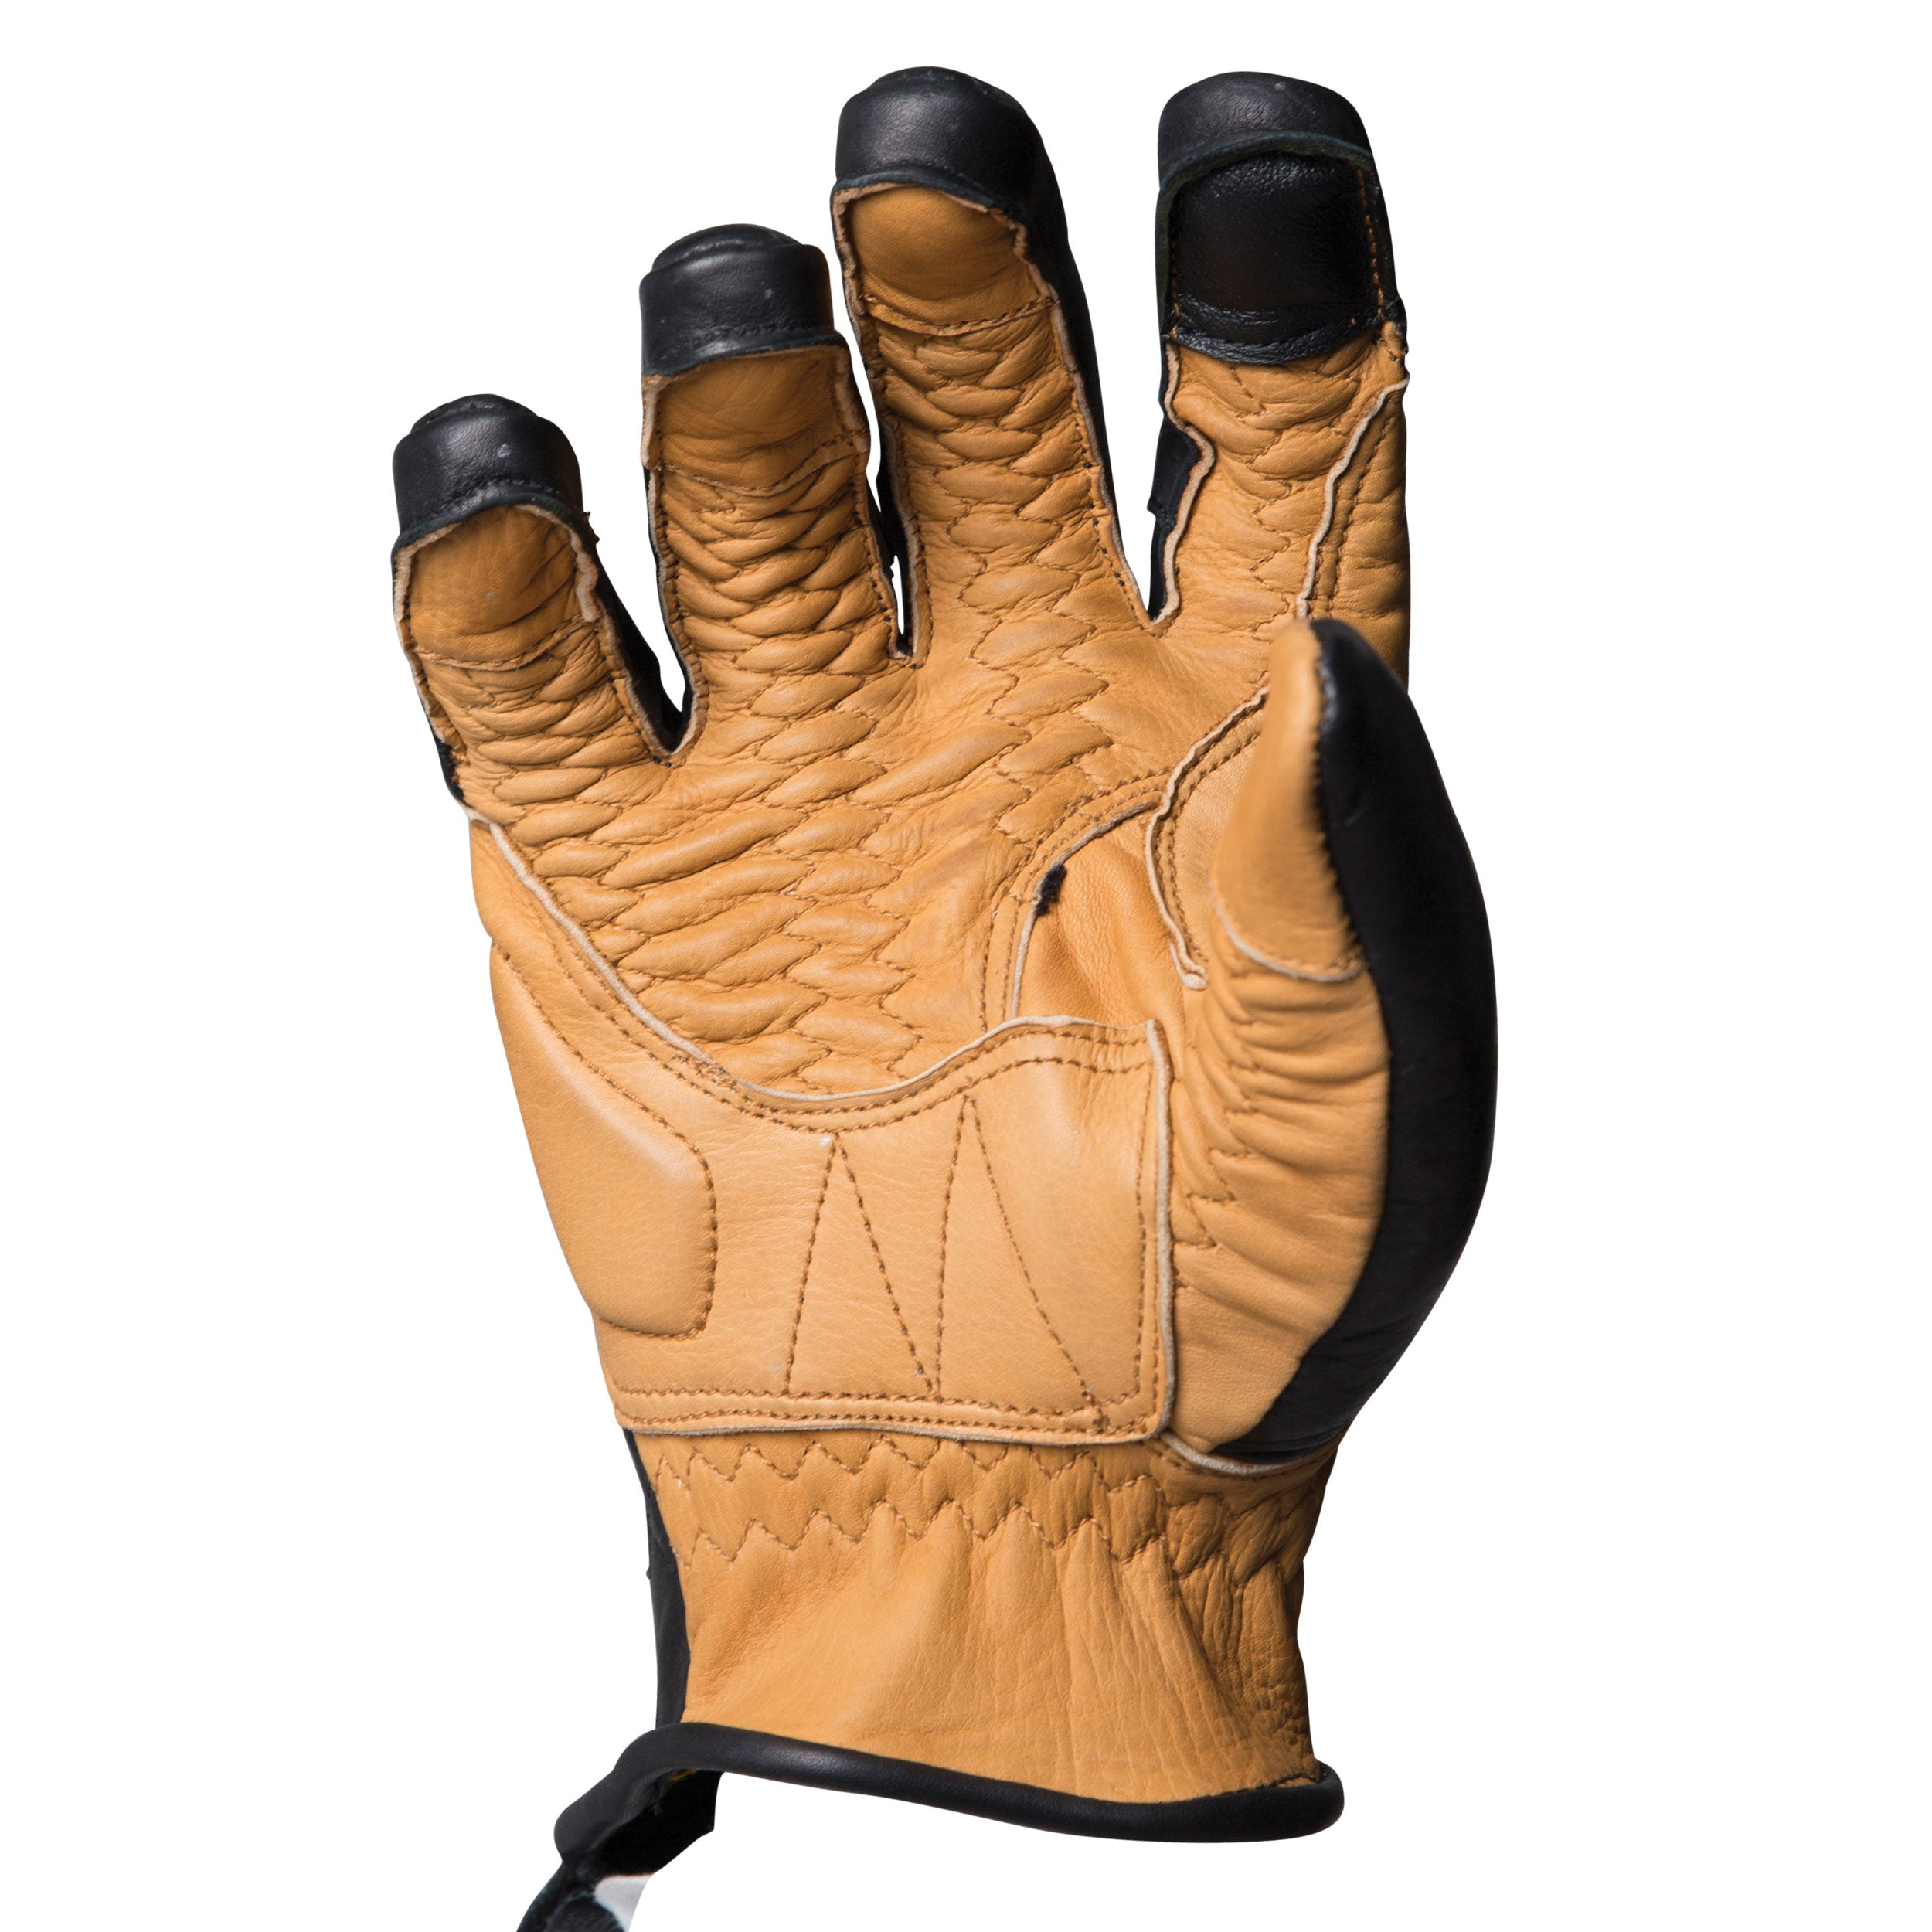 Duster black and tan heritage leather motorcycle glove made with the spirit of iconic desert motorcross racing, this is the palm view, and could be worn on motox, chopper riding, cafe racer, tracker, brat style, or adventure bike